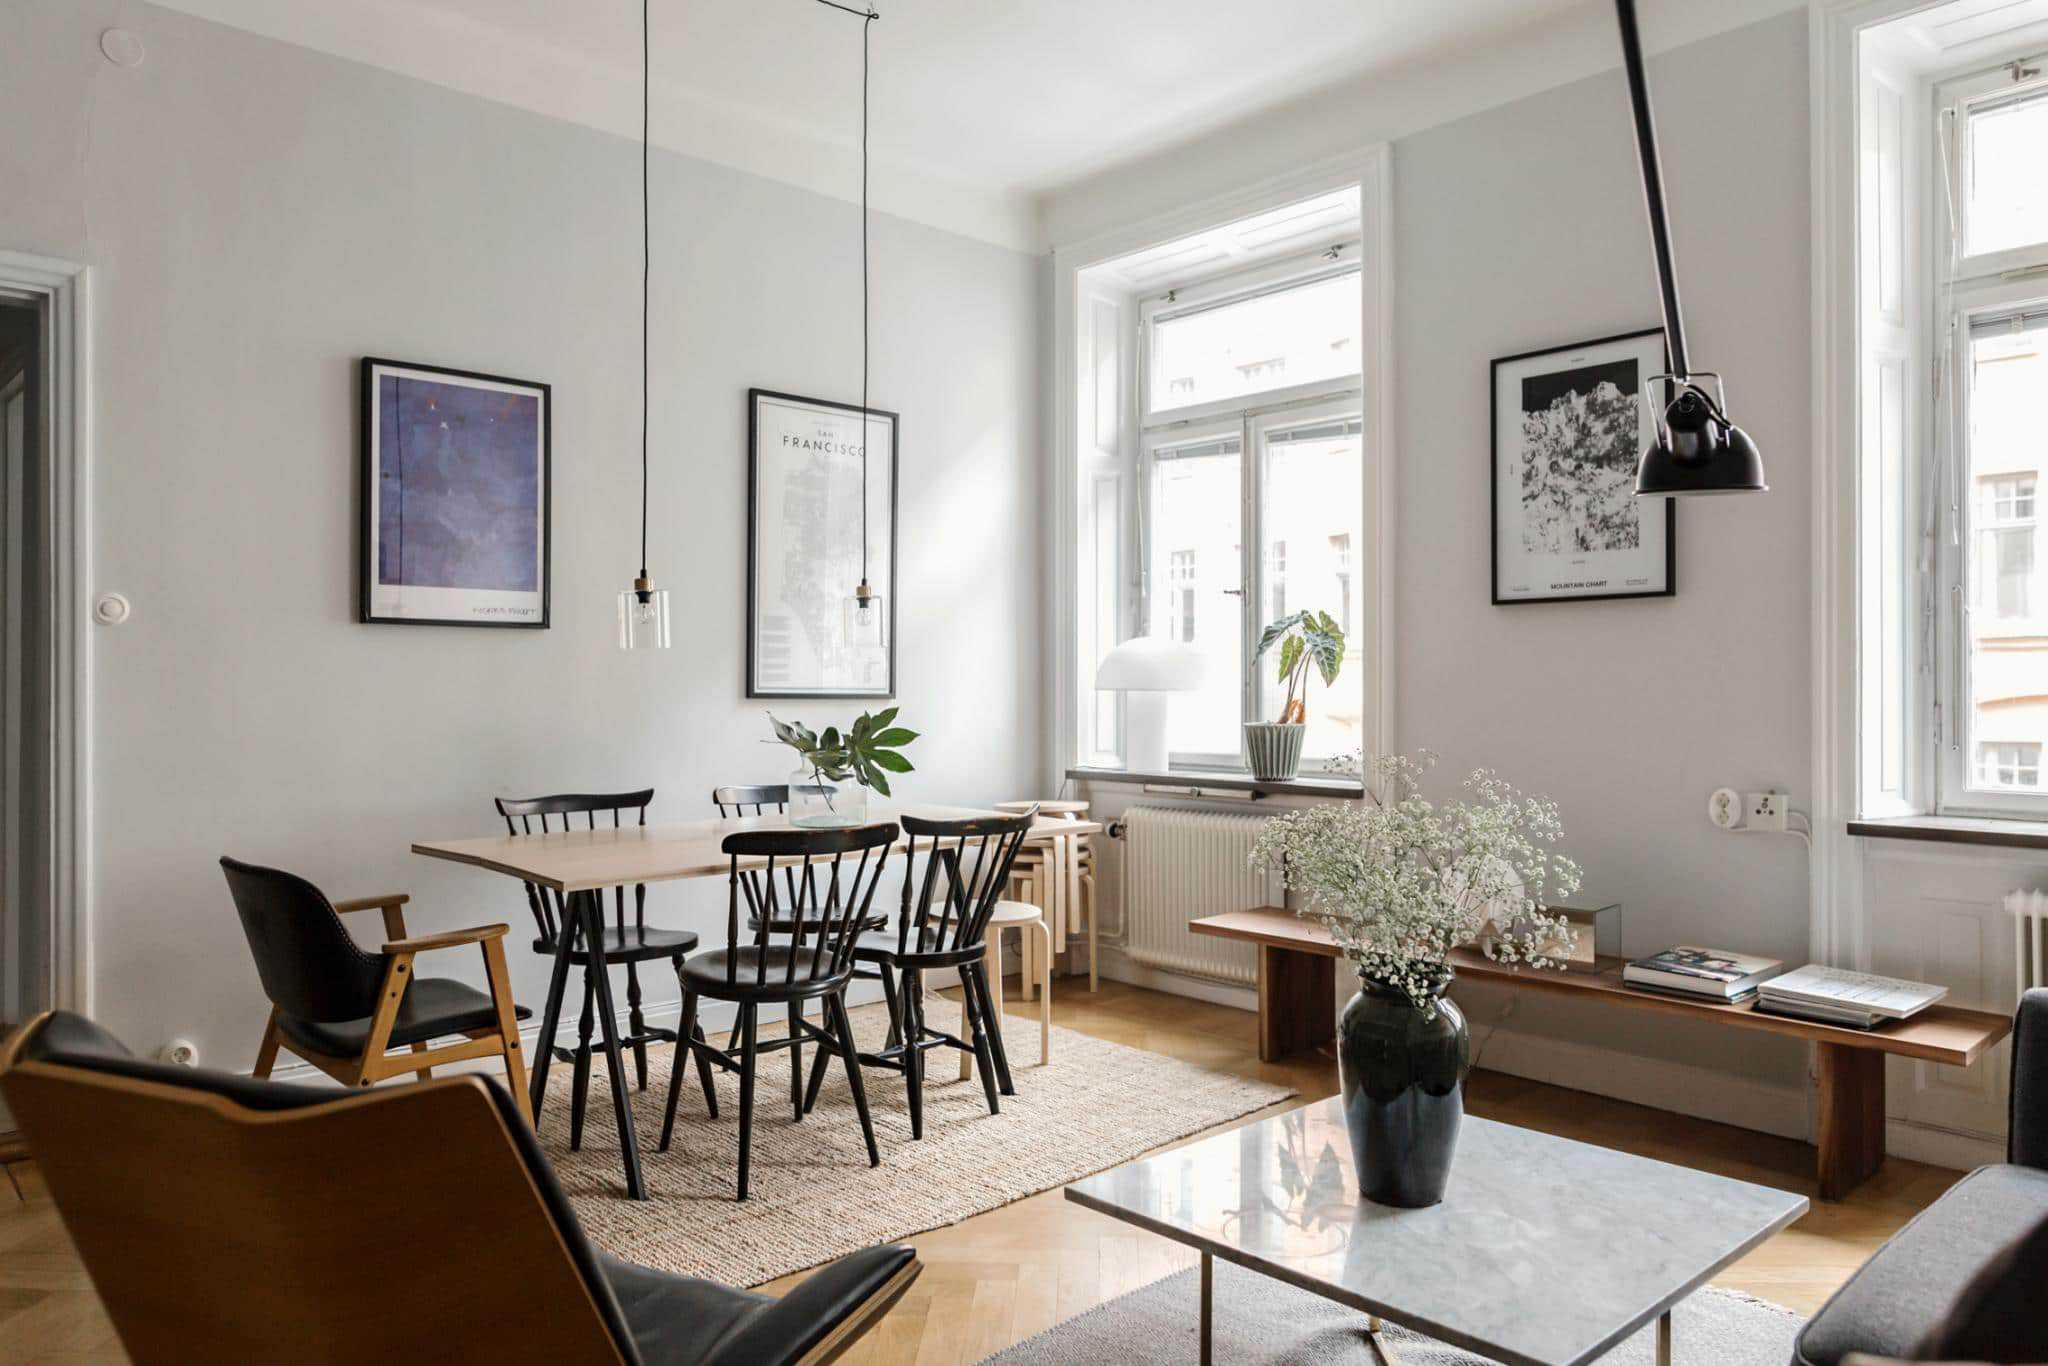 designing small apartment living rooms cupboard room furniture how to decorate a 10 secrets gathering dreams scandinavian inspired with grey walls and big windows this dreamy swedish